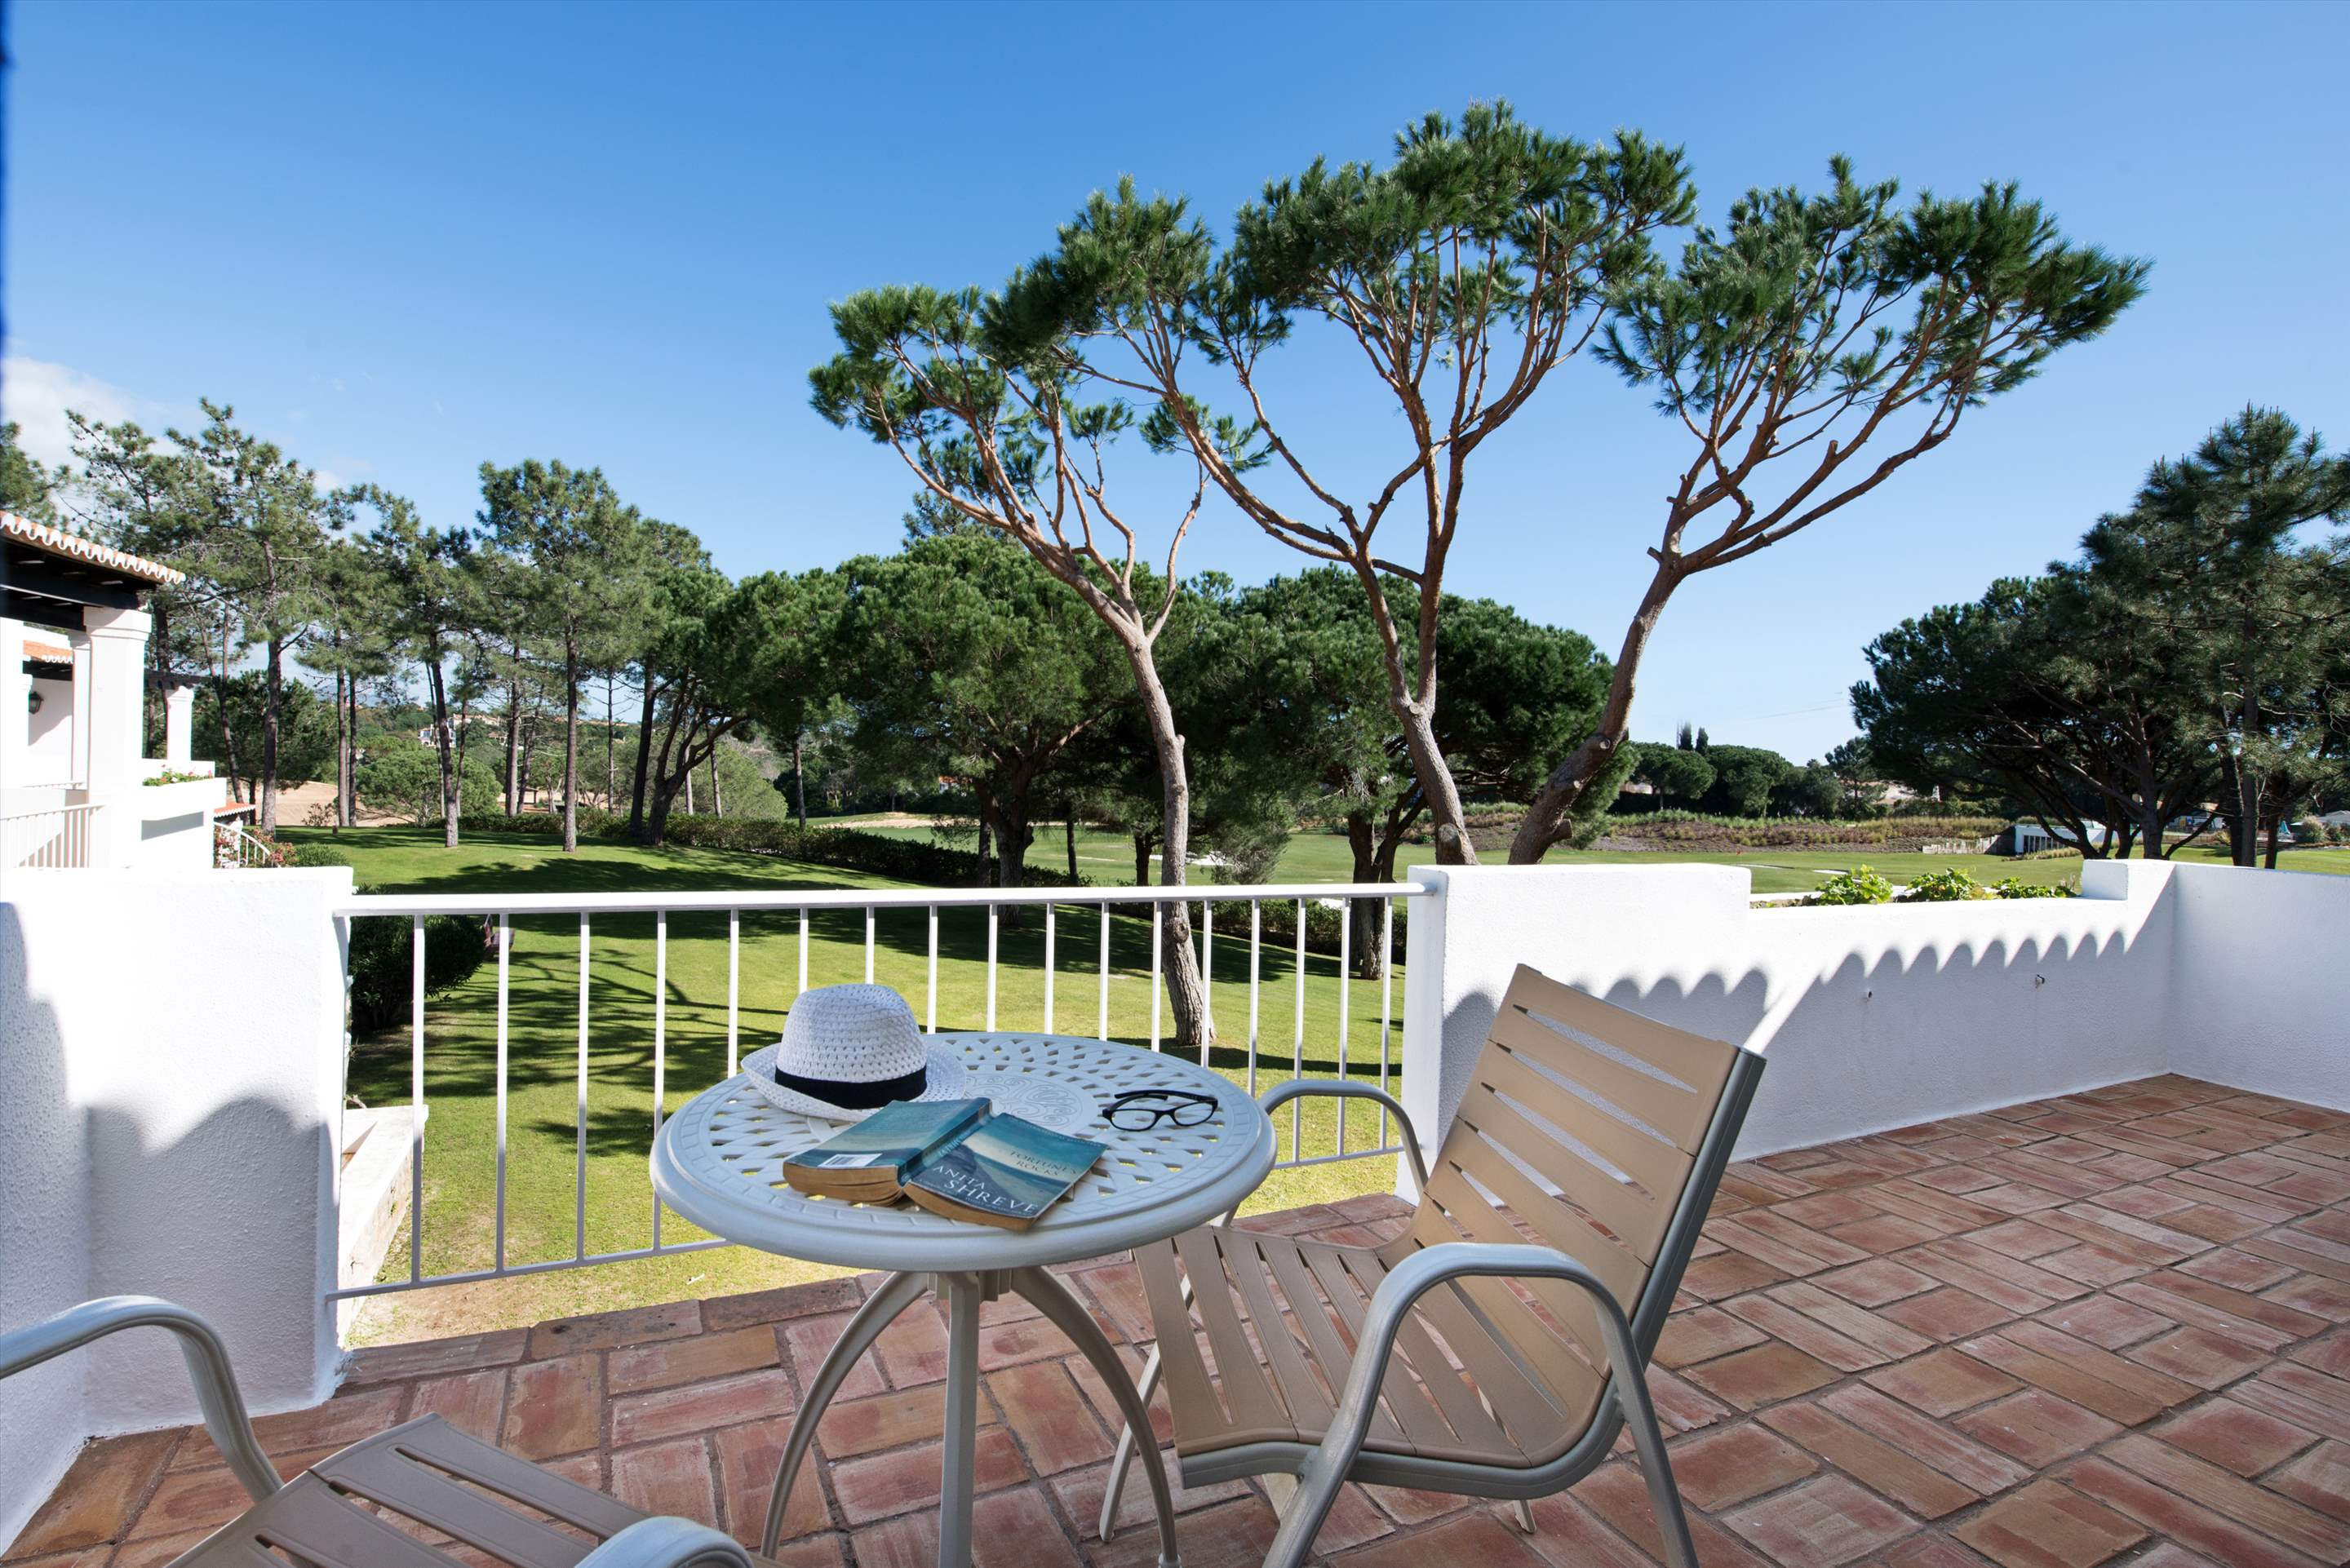 Four Seasons Country Club 2 bed, Superior - Thursday Arrival, 2 bedroom apartment in Four Seasons Country Club, Algarve Photo #9